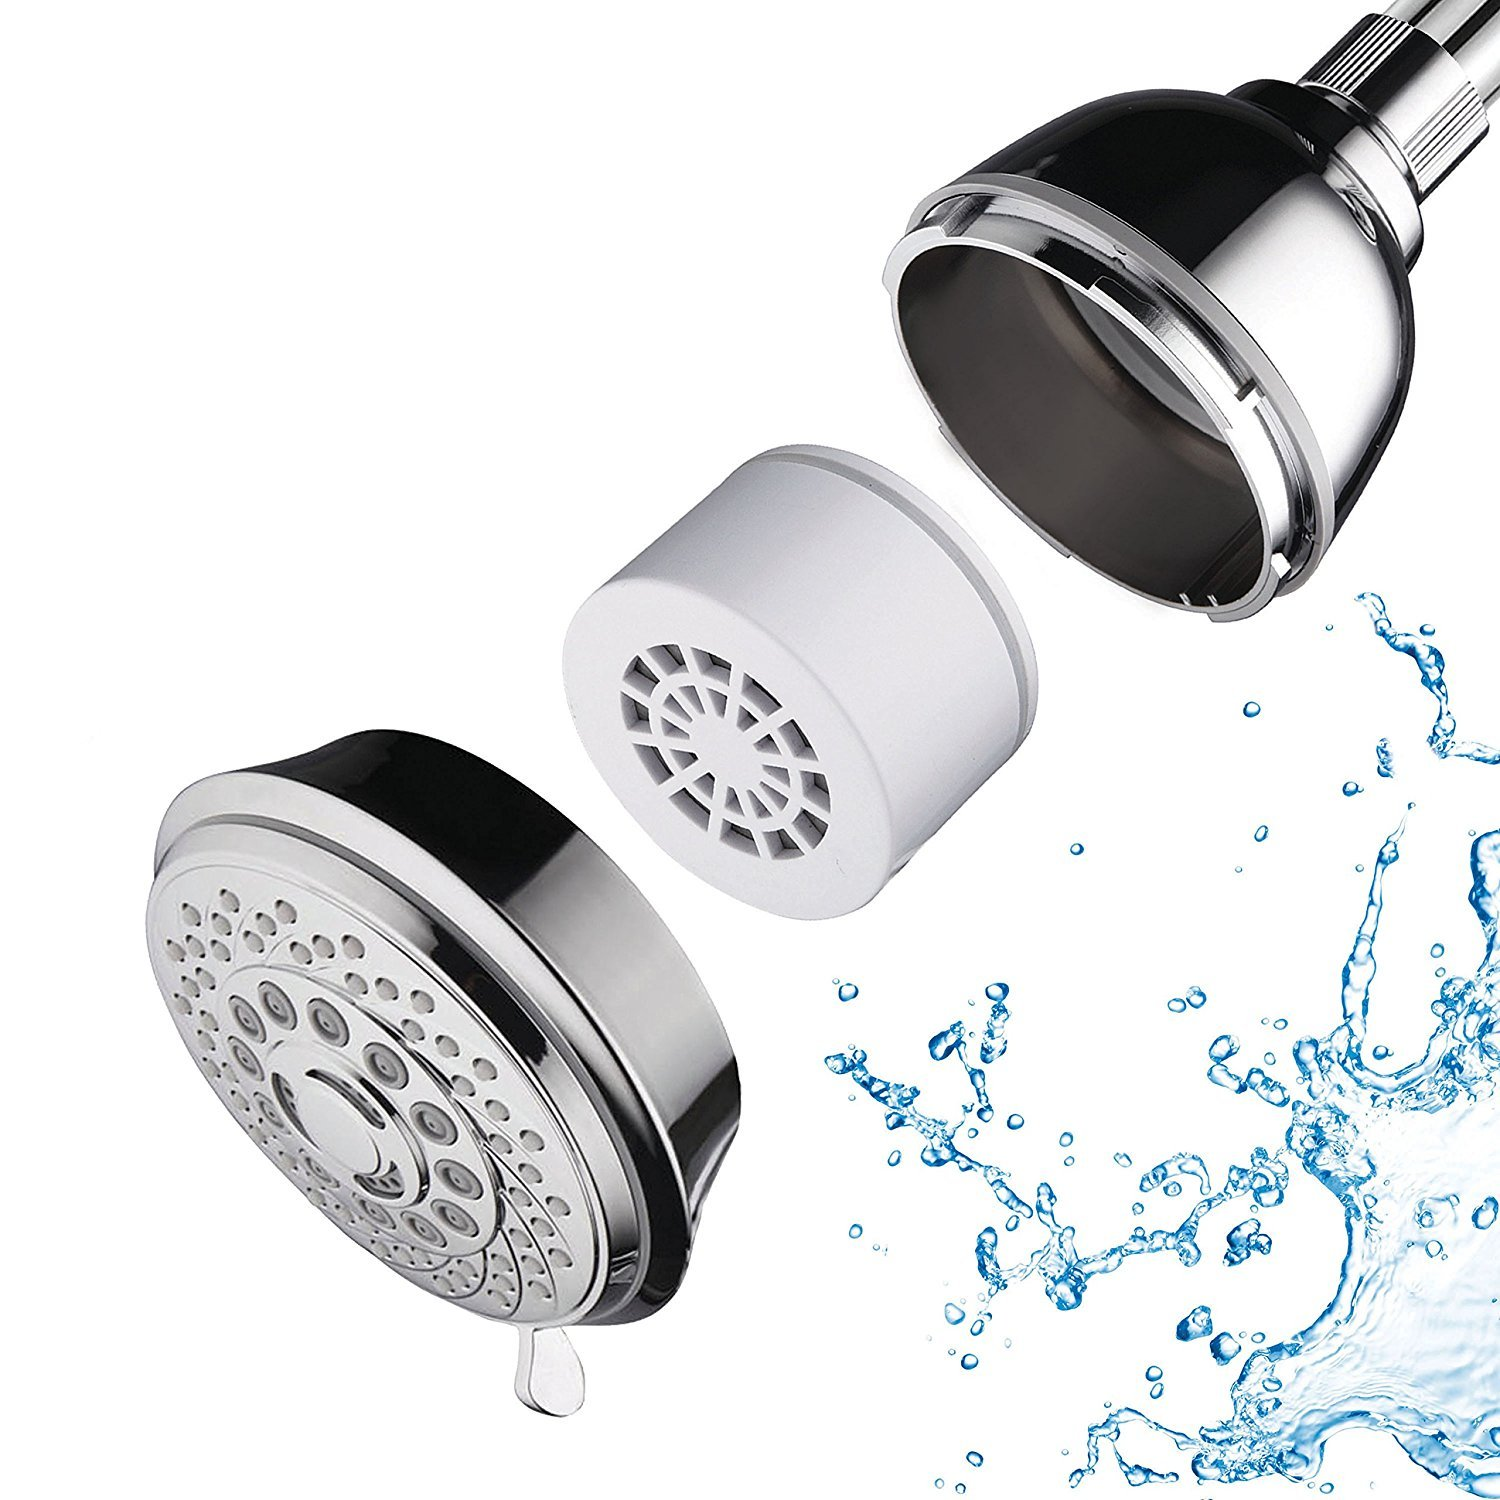 AquaCare by Hotel Spa 7-Setting Filtered Handheld Shower Head with Patented ON//Off Pause Switch and 3-Stage Shower Filter Cartridge Inside